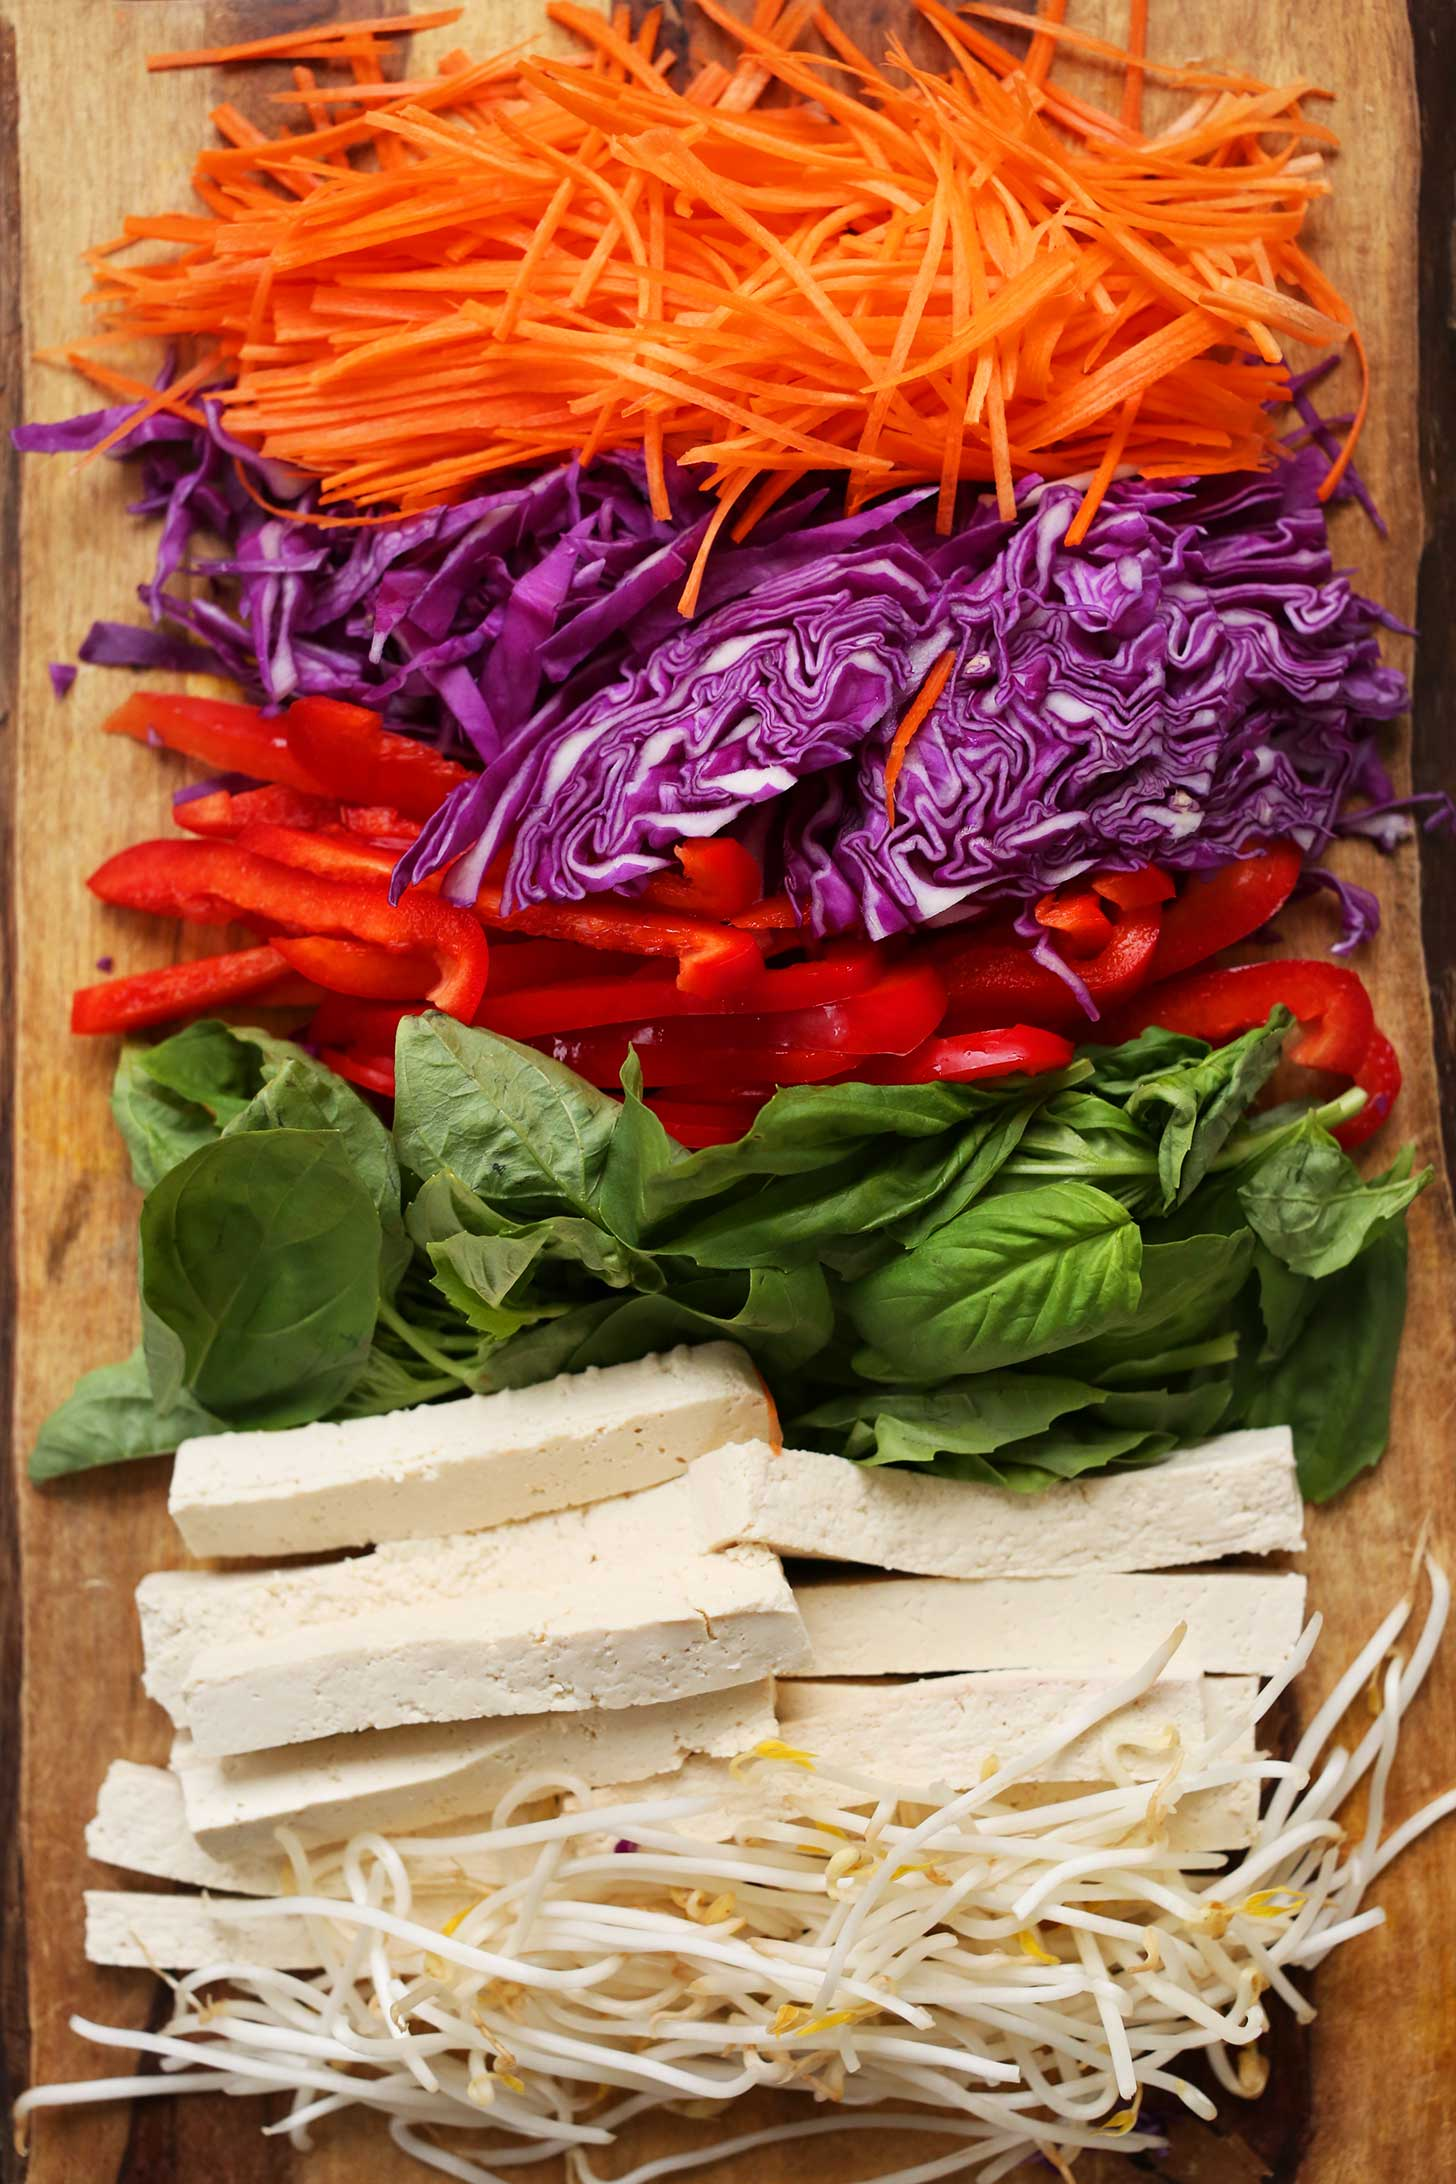 Shredded carrots, cabbage, bell pepper, basil, tofu, and bean sprouts for making homemade vegan salad rolls